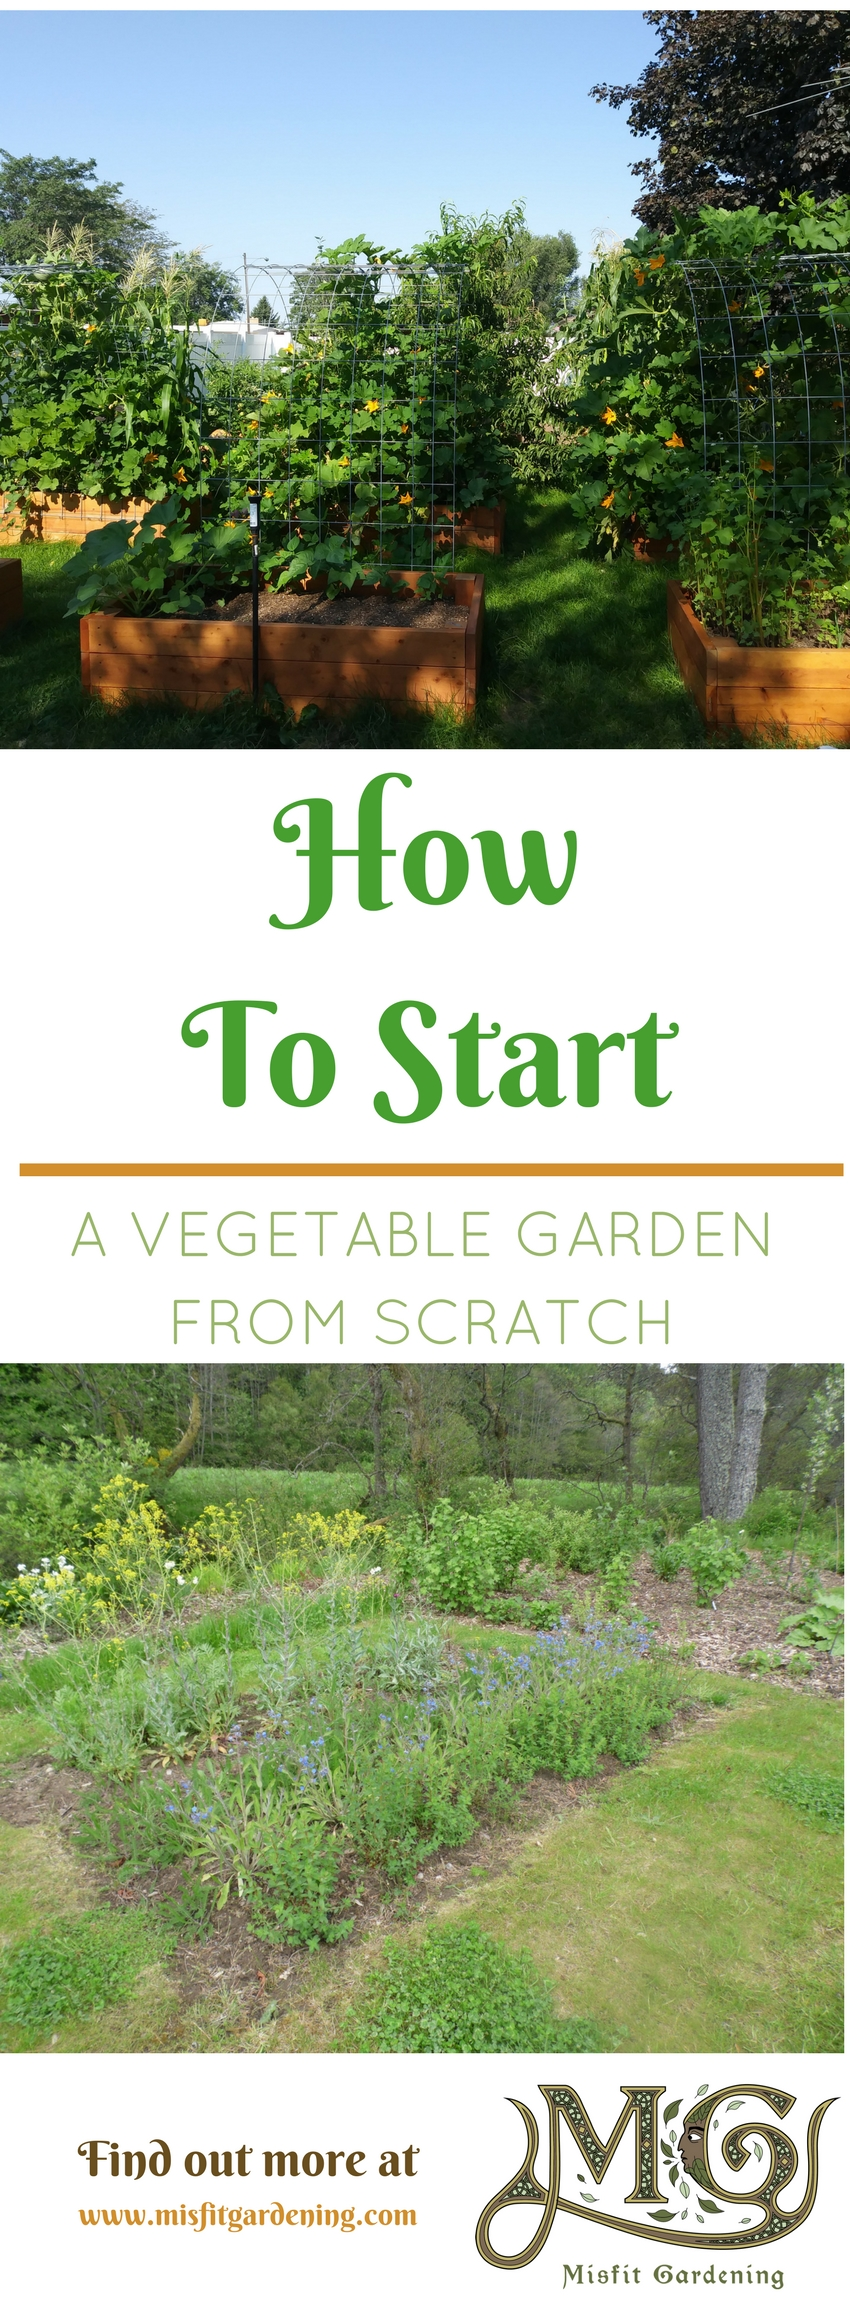 4 Steps to Starting a Vegetable Garden